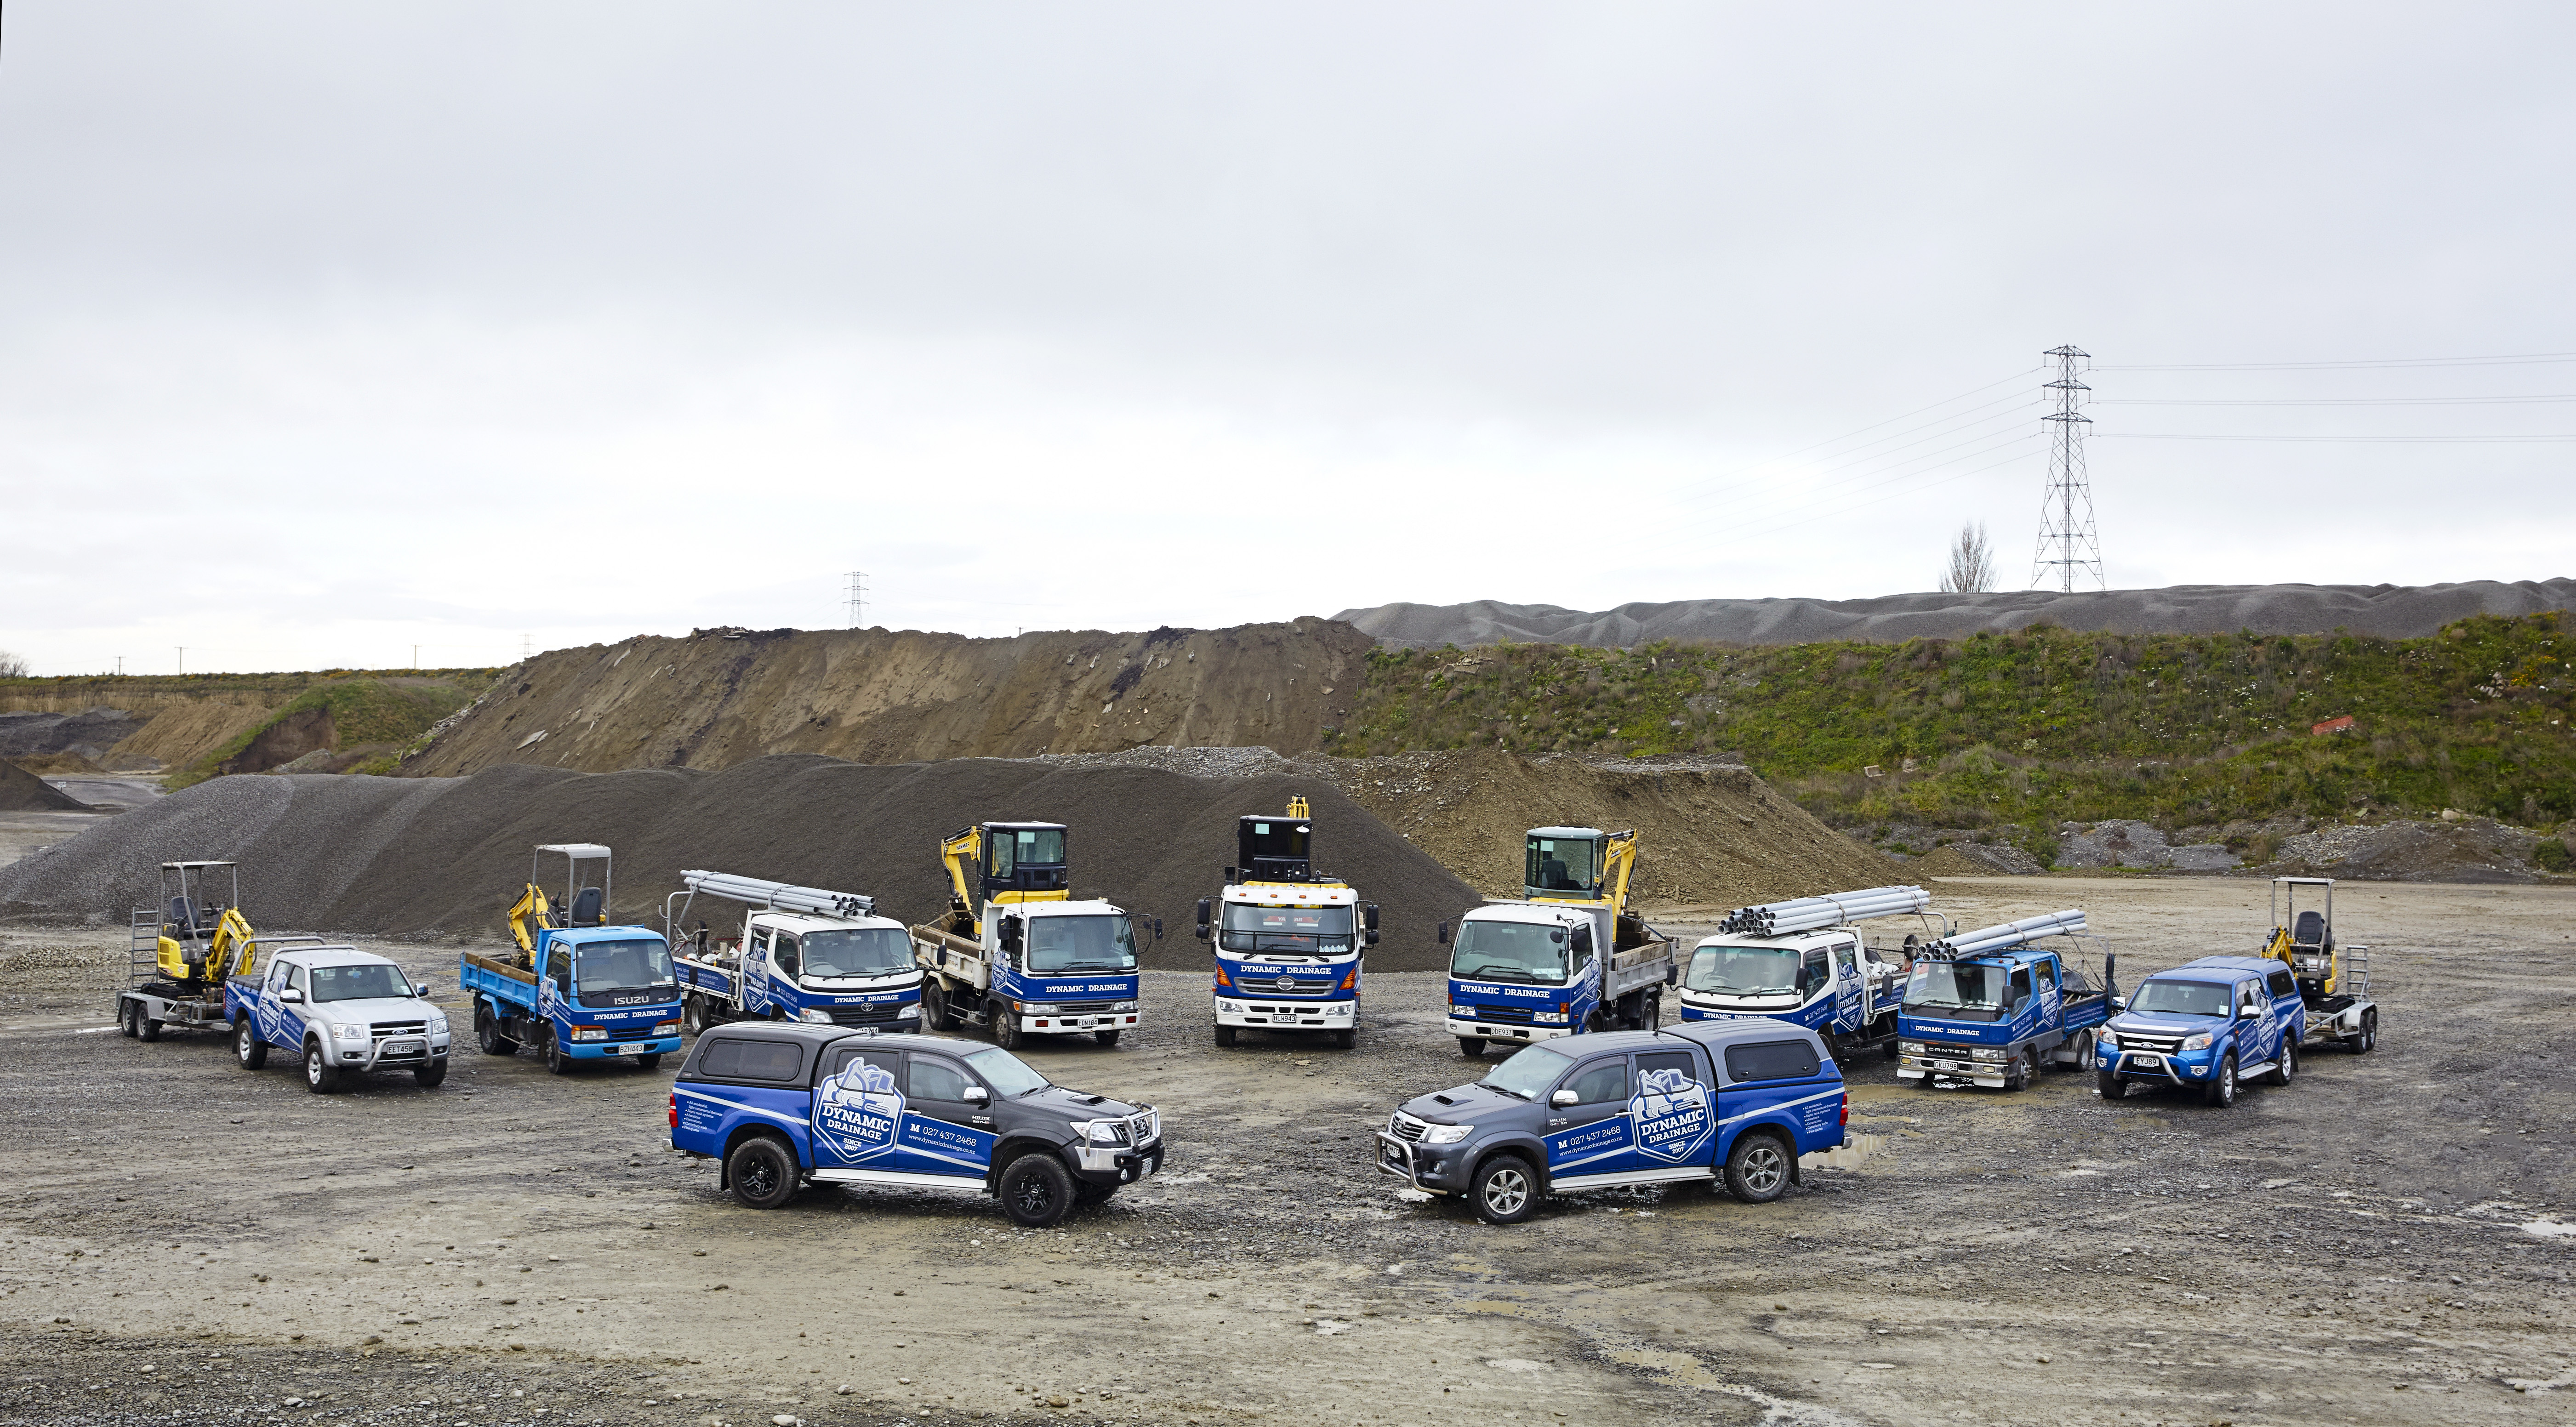 dynamic drainage fleet photo FORMATTED